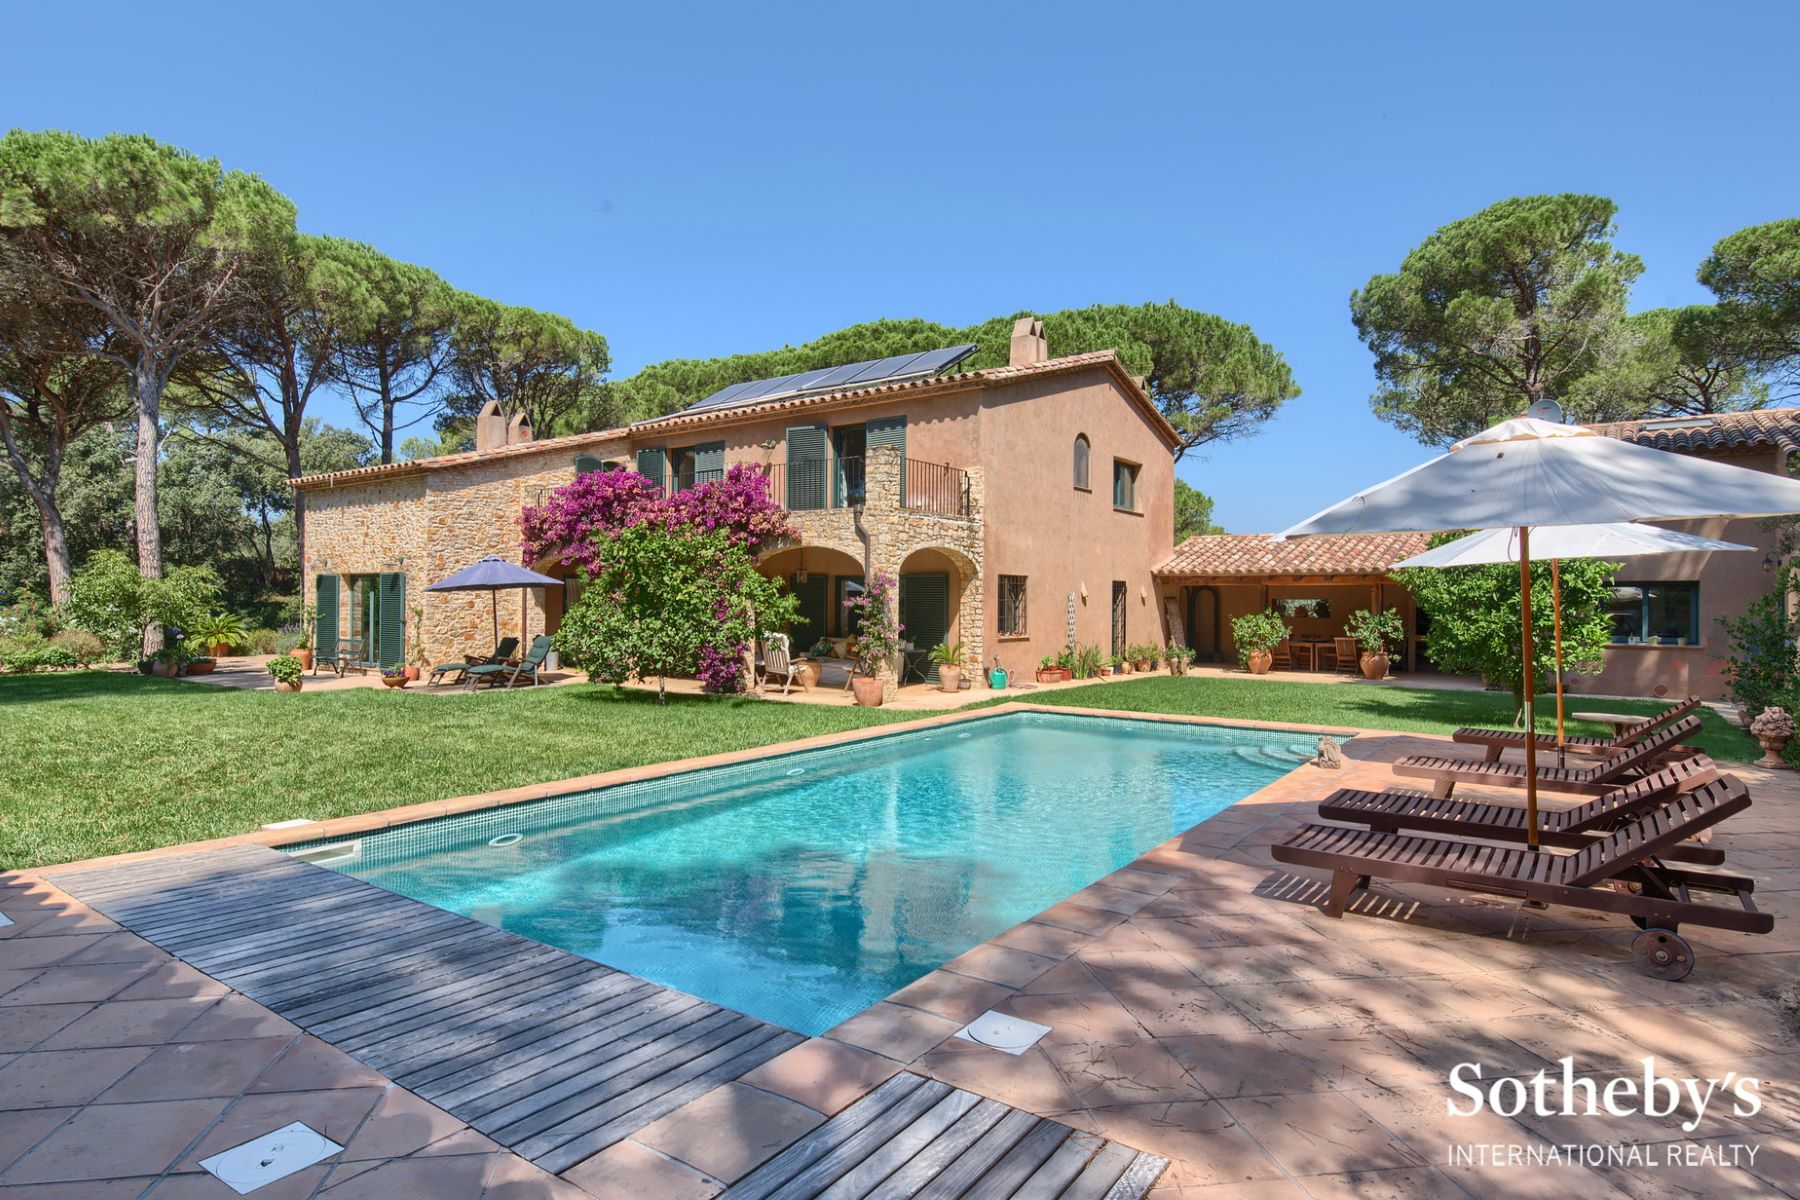 Single Family Home for Sale at Country house between the pretty village of Pals and the beach Pals, Costa Brava, 17256 Spain